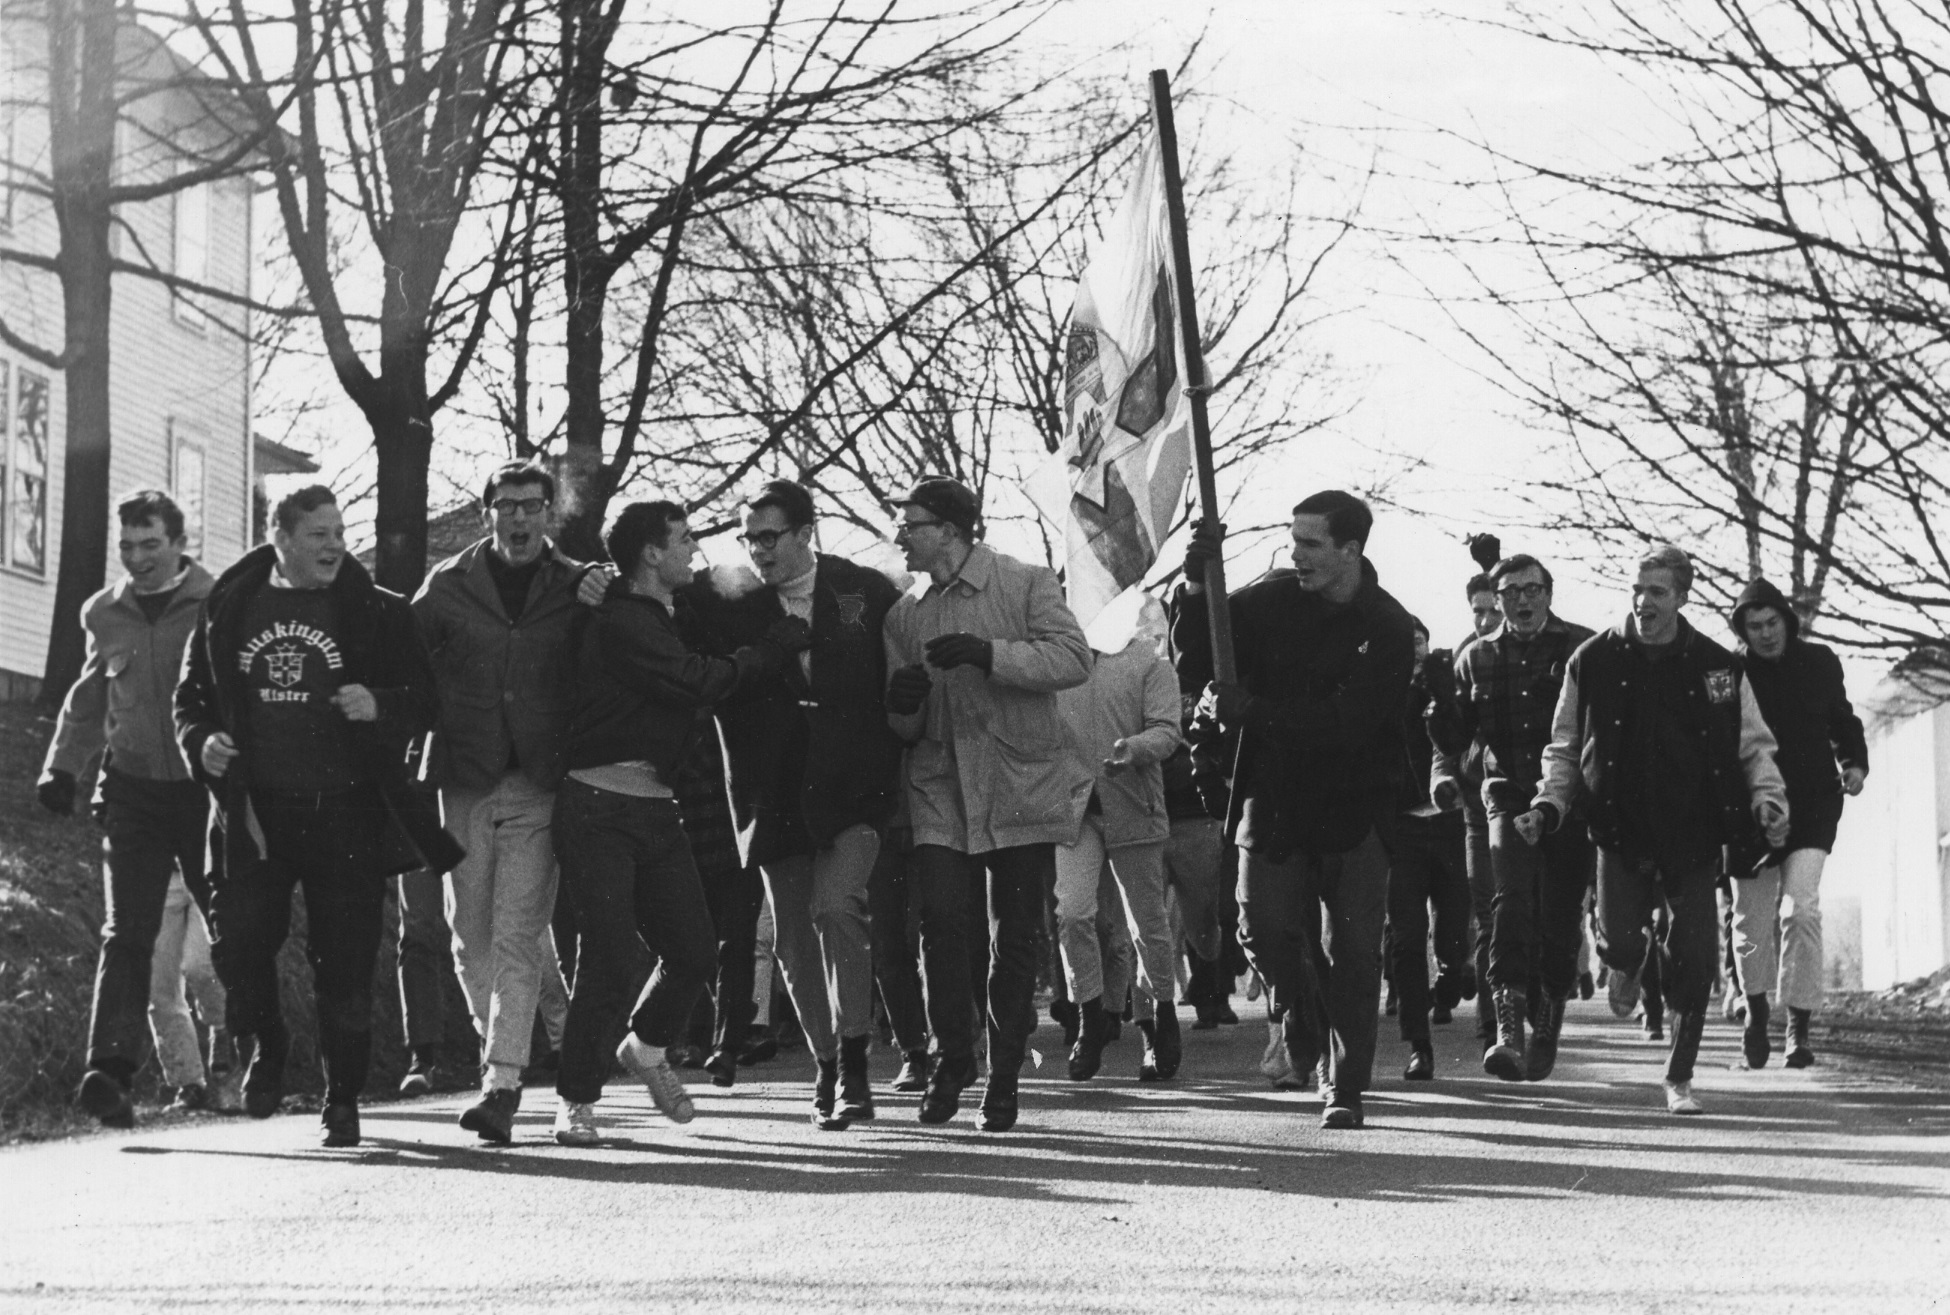 Ulster Men running while carrying the flag of Ulster.